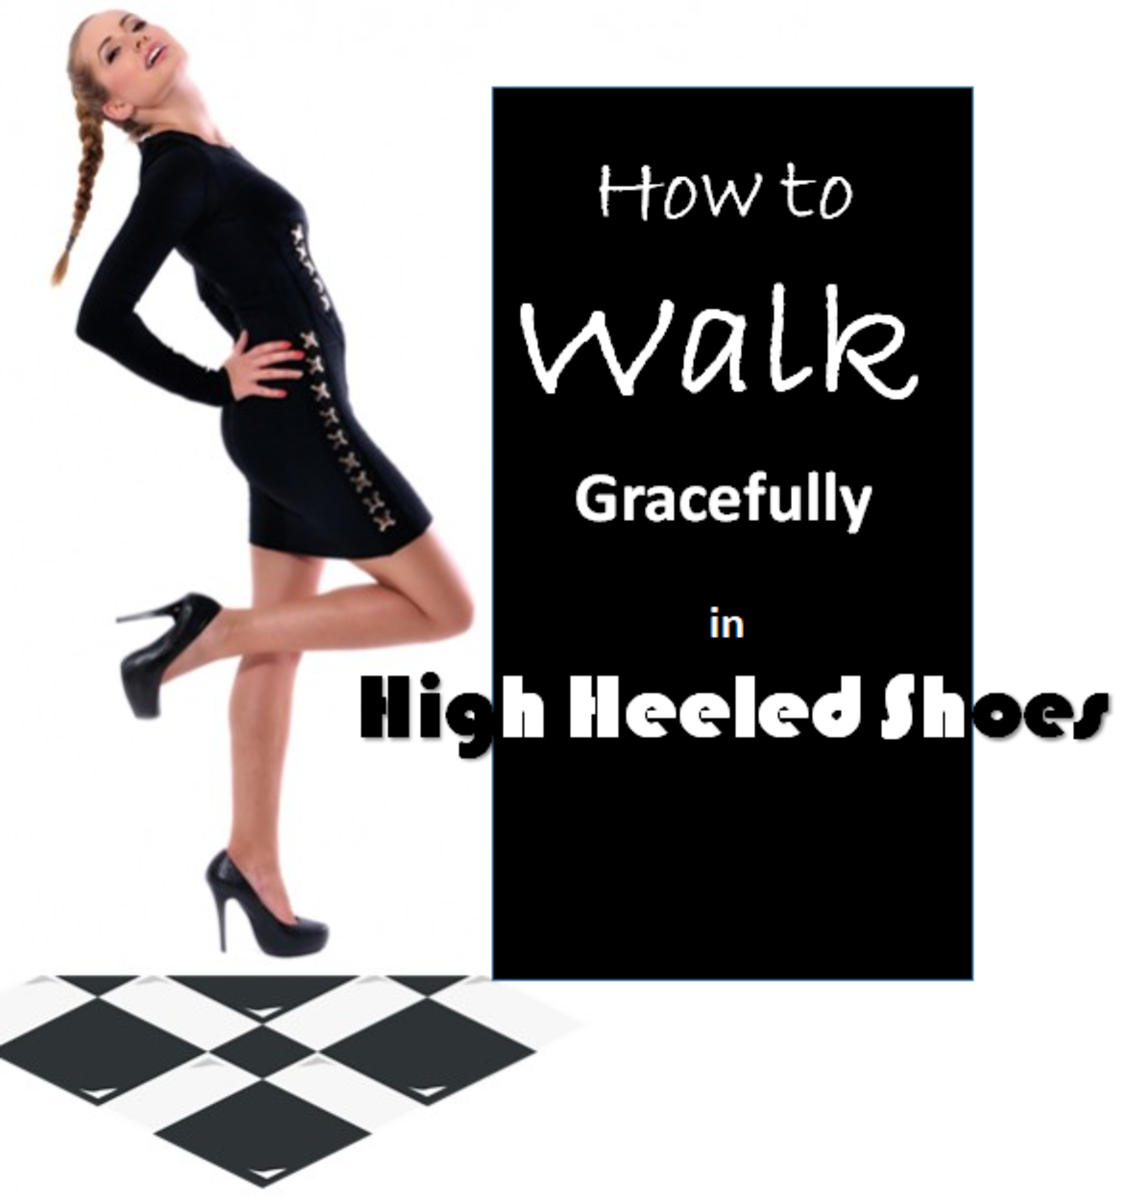 walk-gracefully-in_spiked-shoes_high-heeled-shoes-for-the-chic